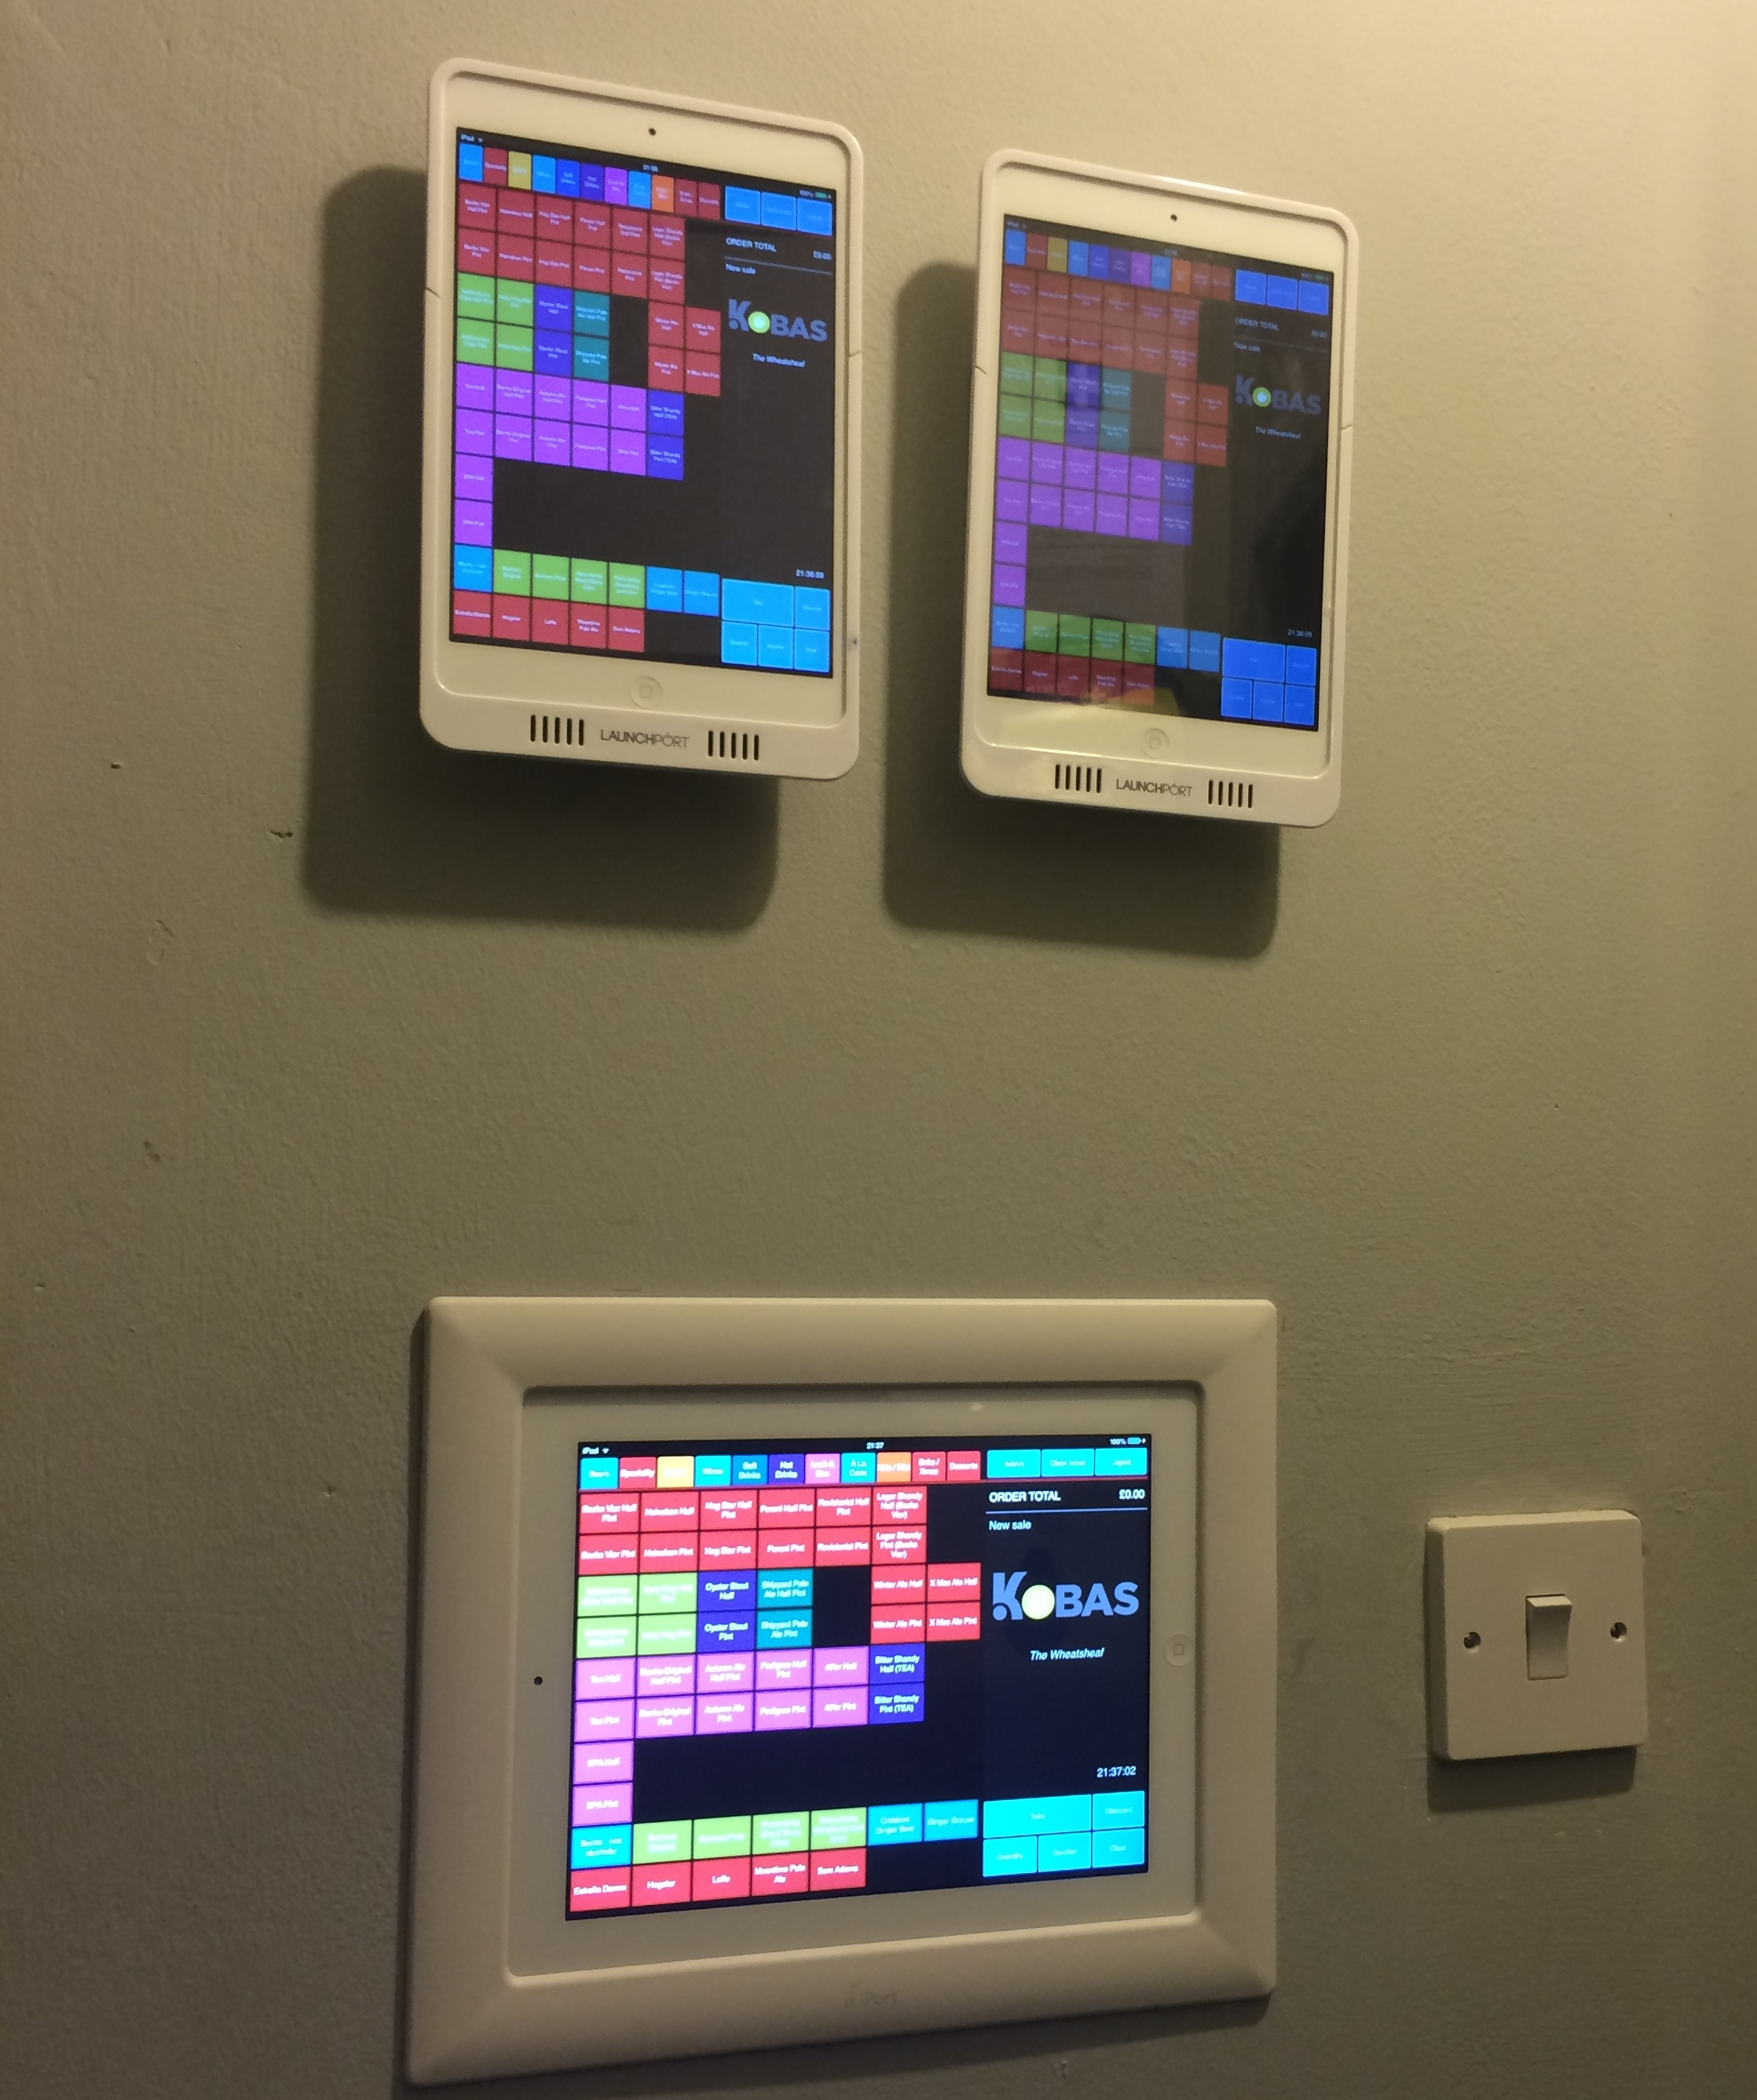 Wall Mounted iPads